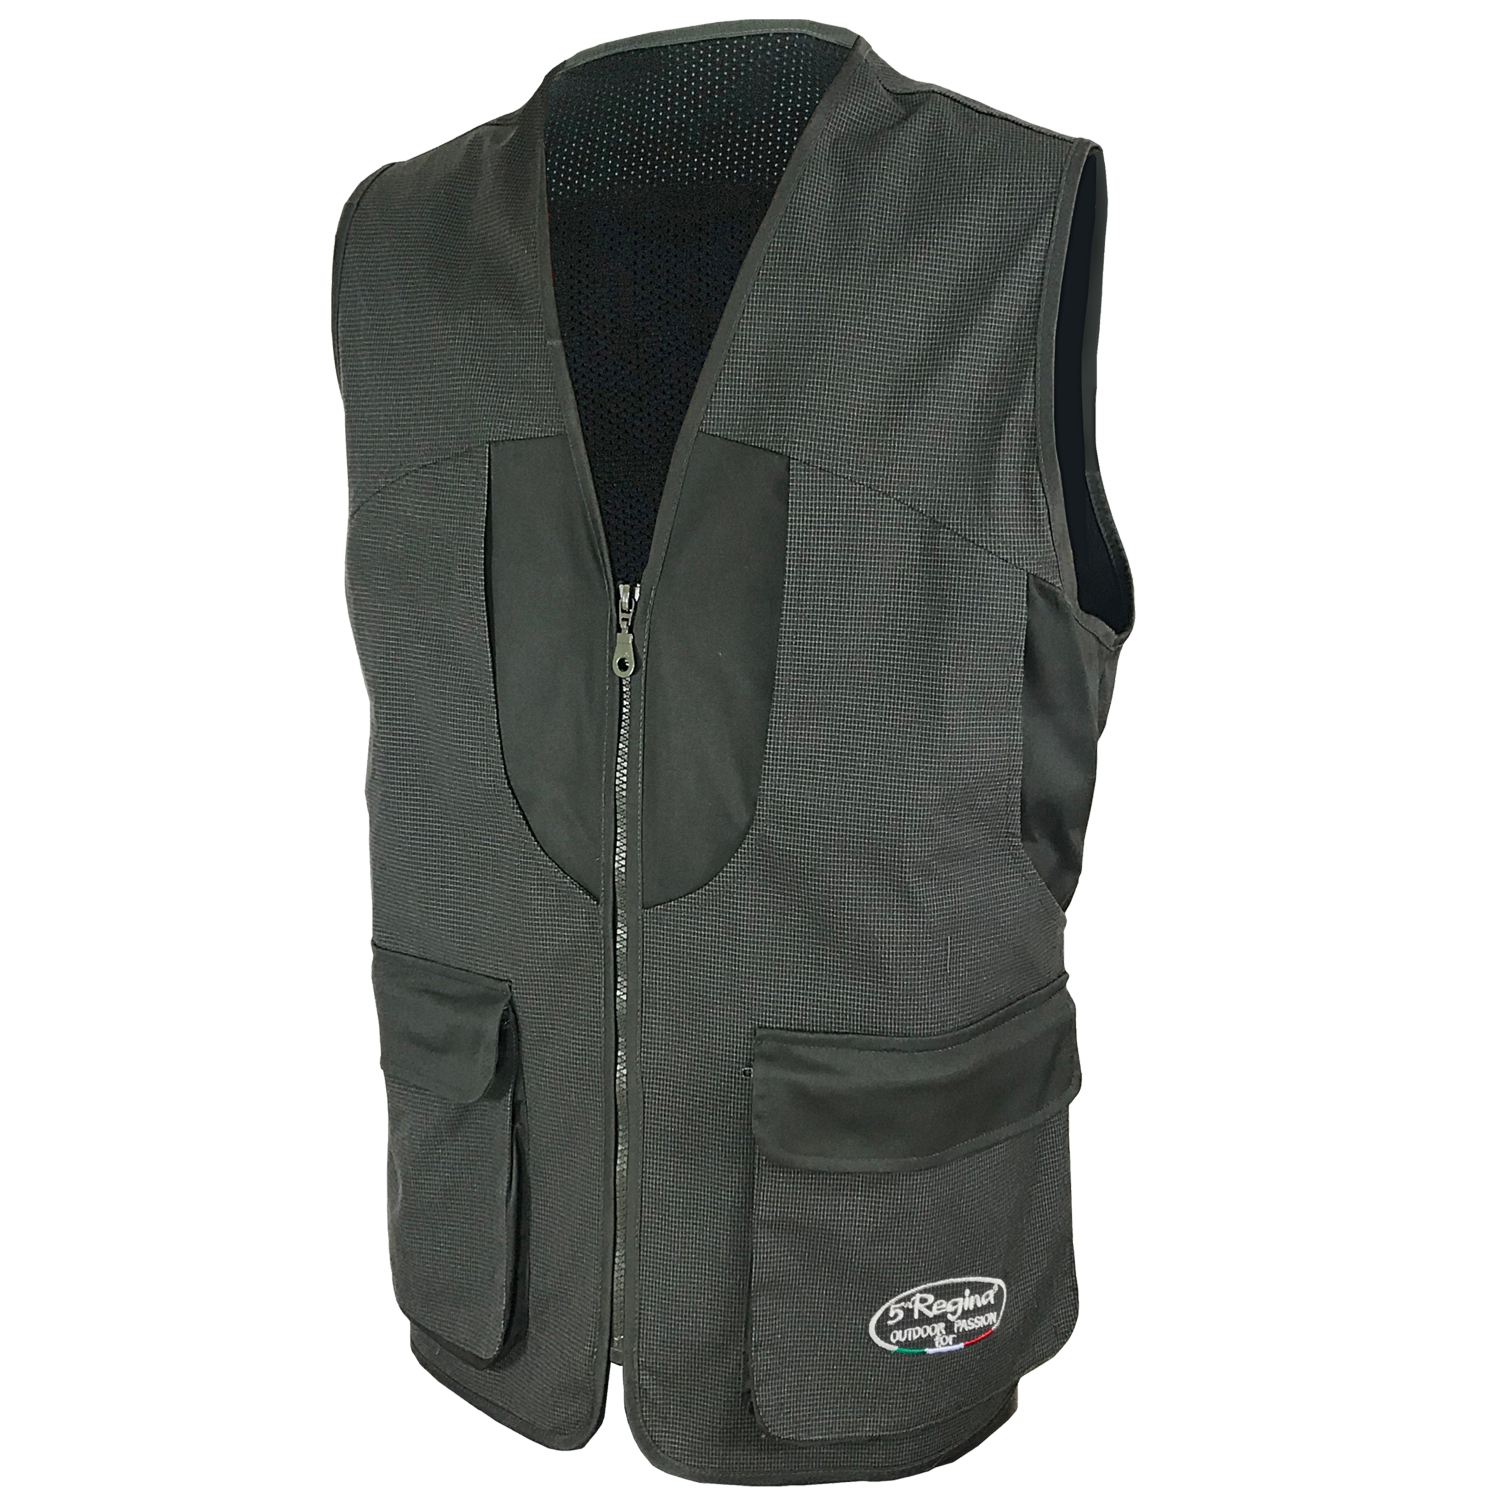 Sleeveless vest kevlar, ripstop, waterproof, tear-proof, rain-proof hunting